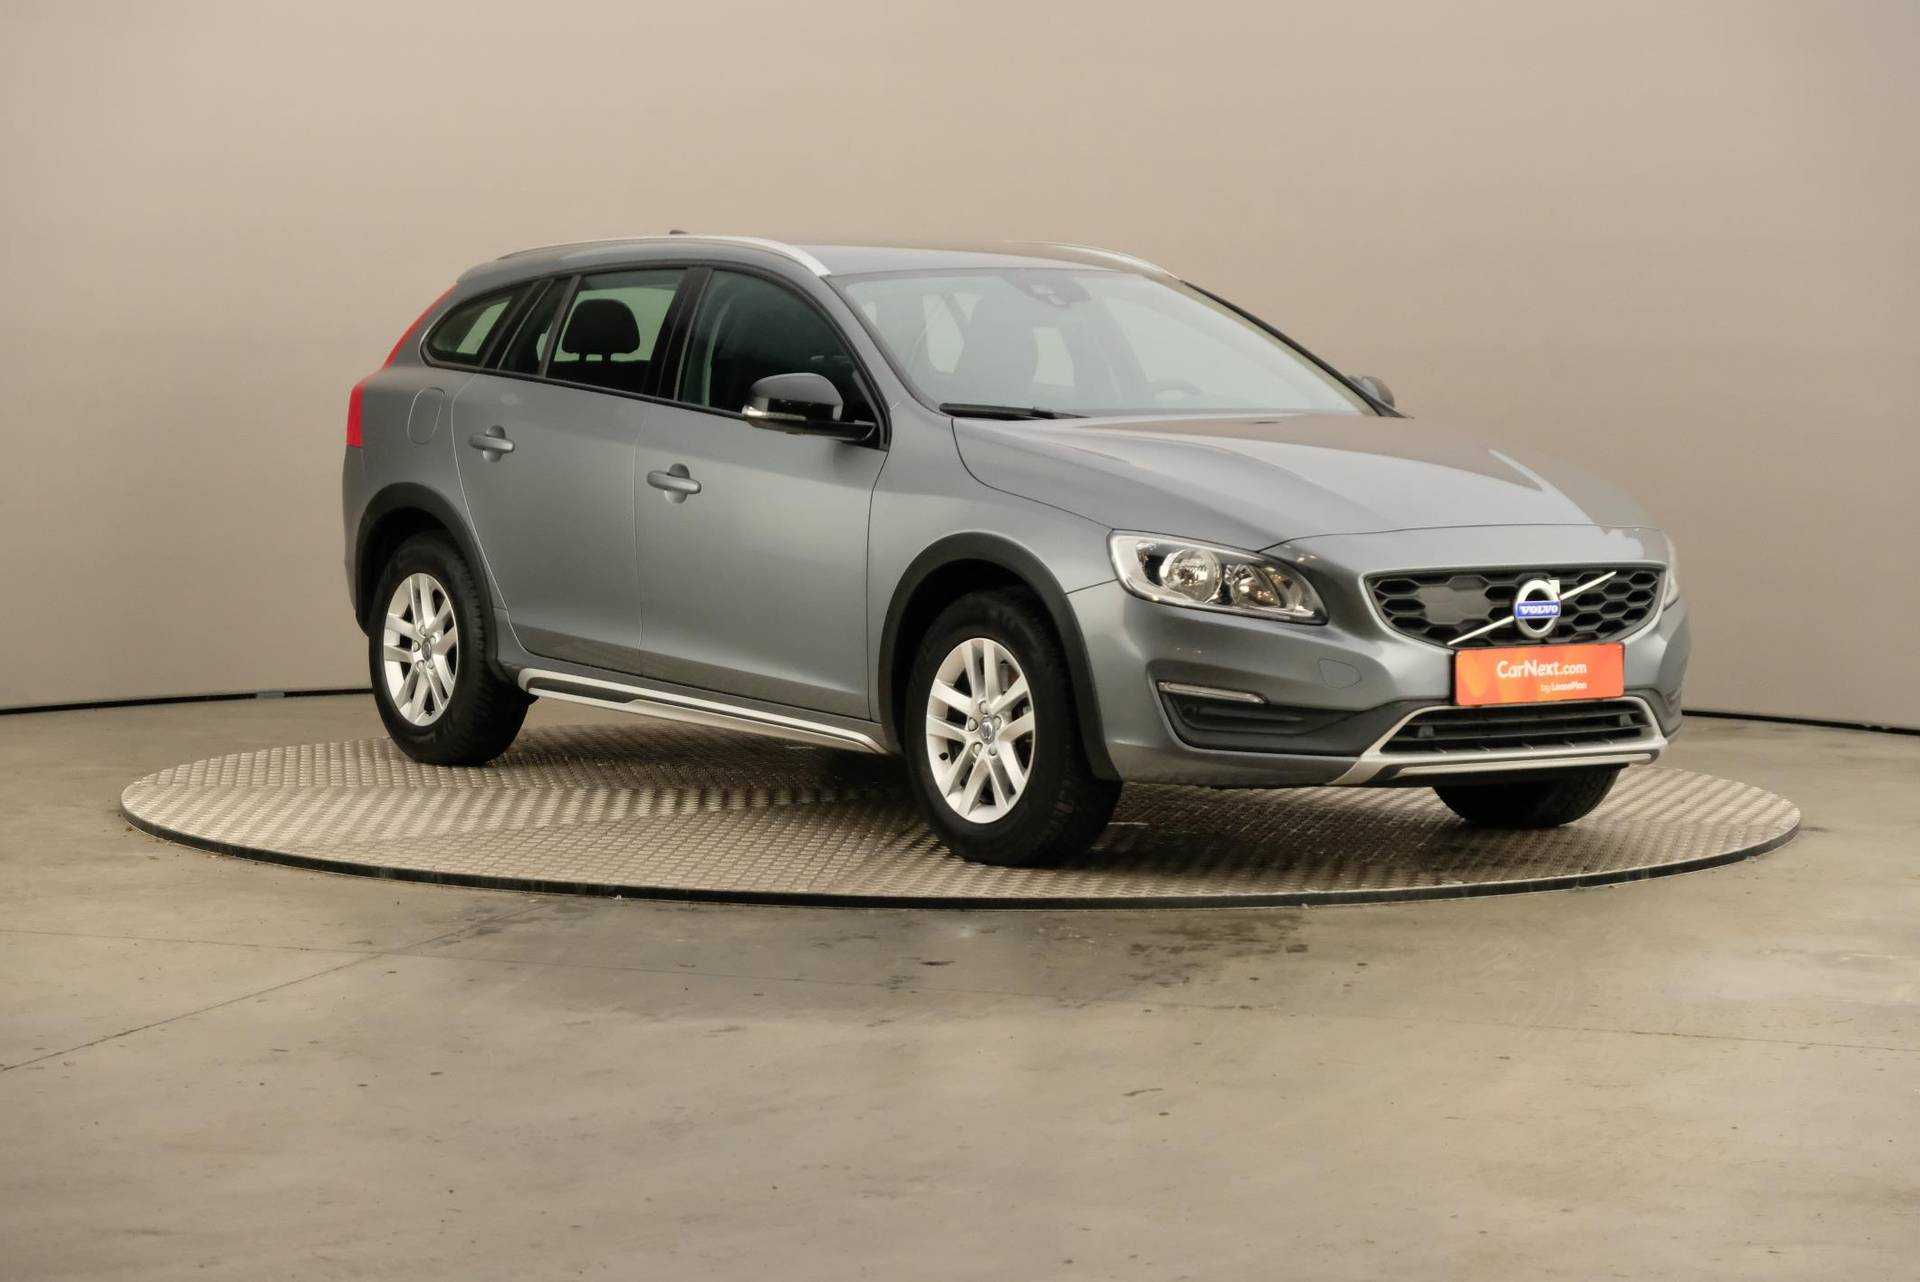 Volvo V60 2.0 D3 Kinetic Geartronic GPS PDC CRUISE CONTROL, 360-image28